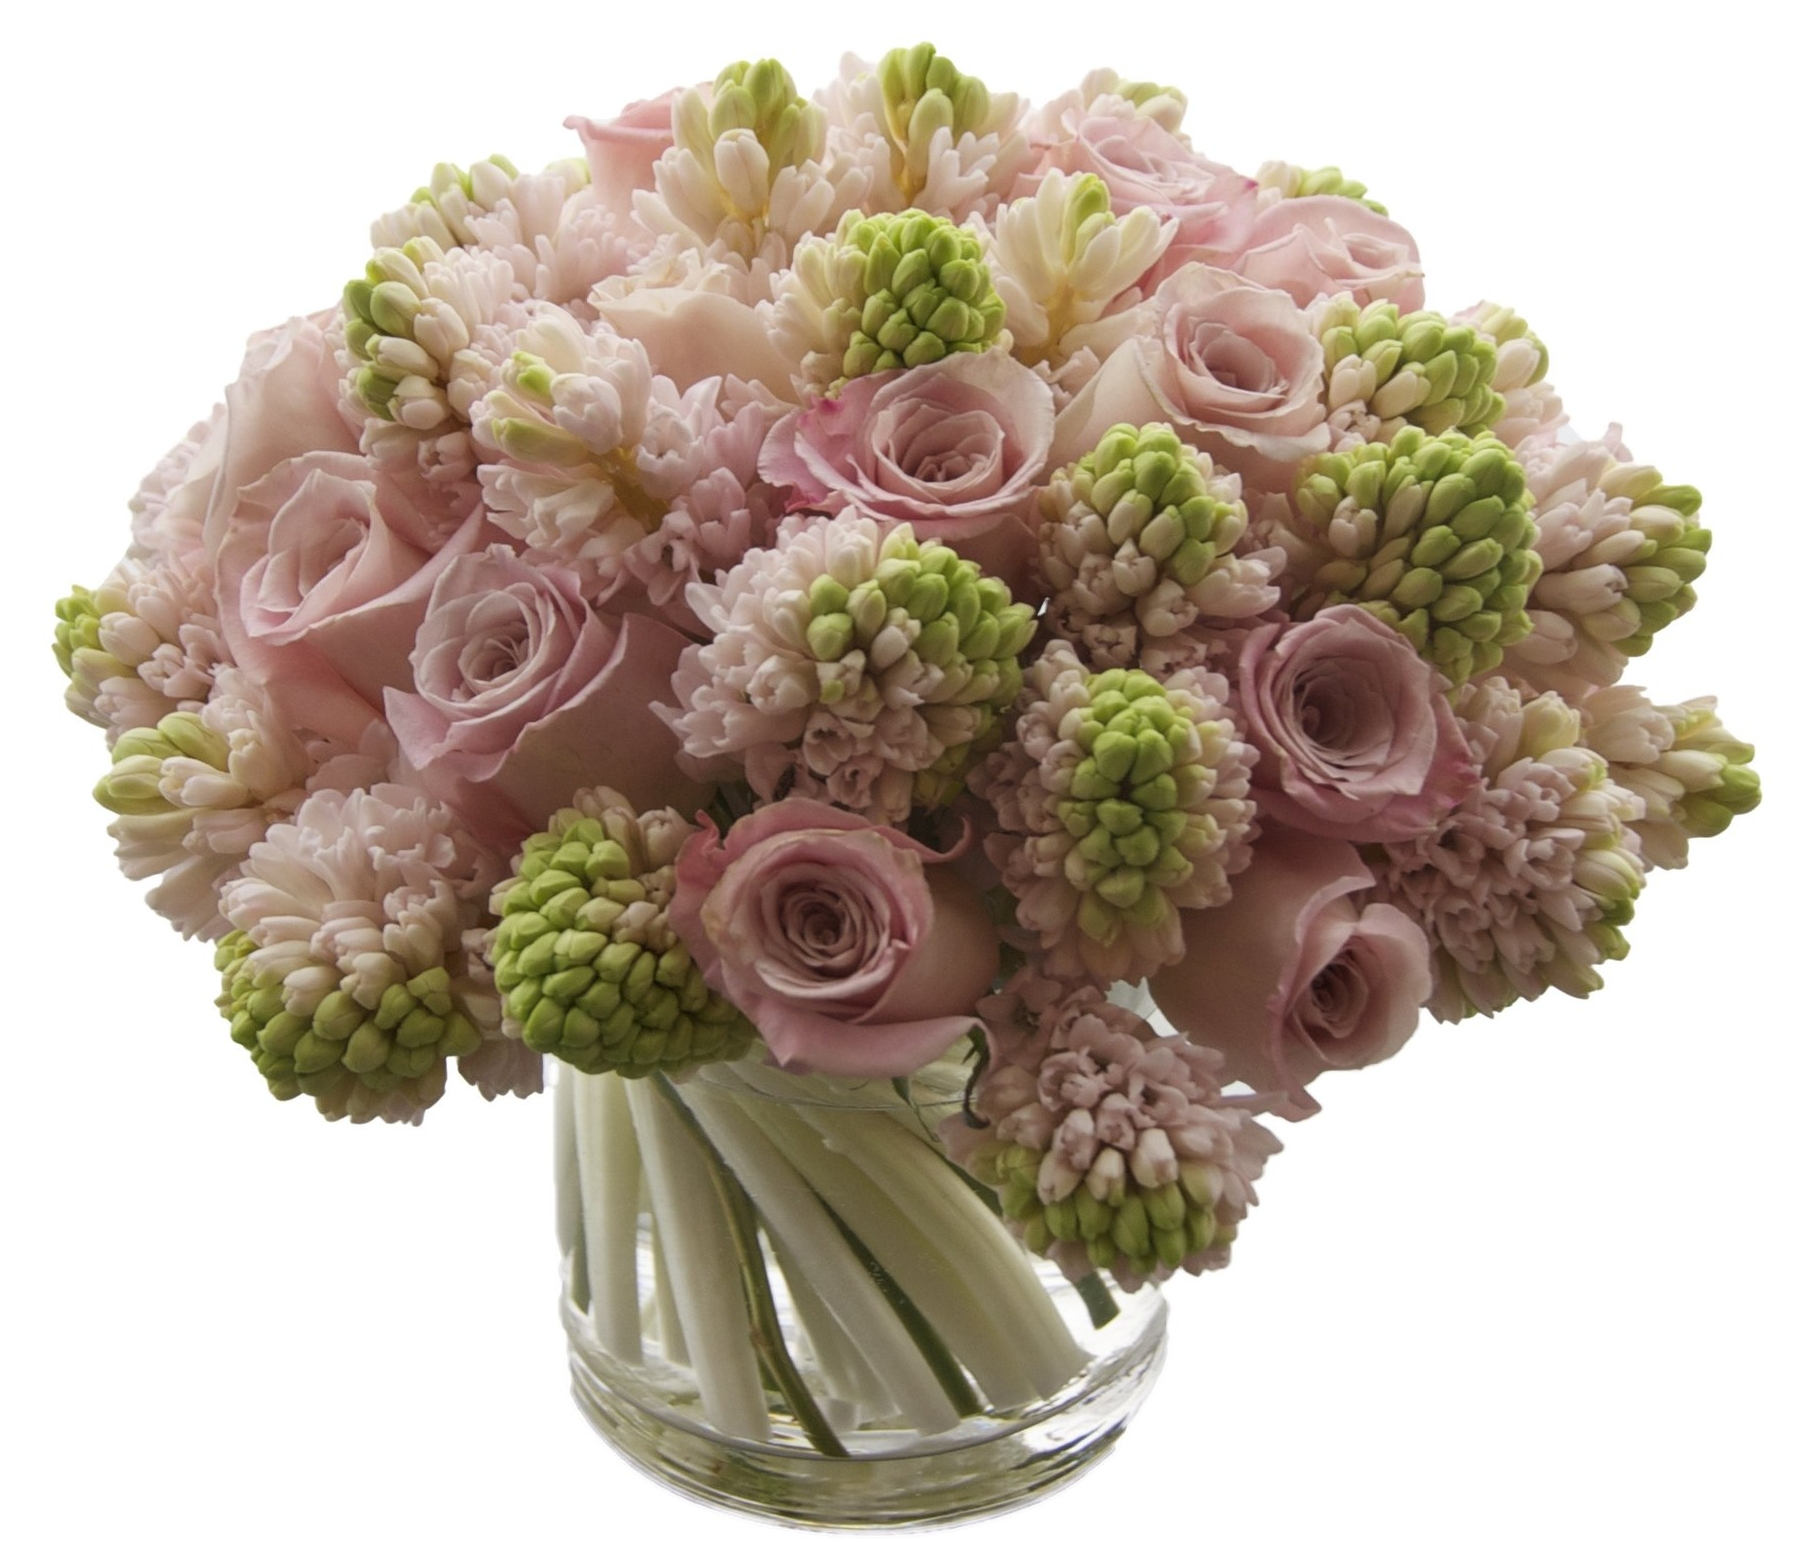 pink rose and hyacinth mix.jpg